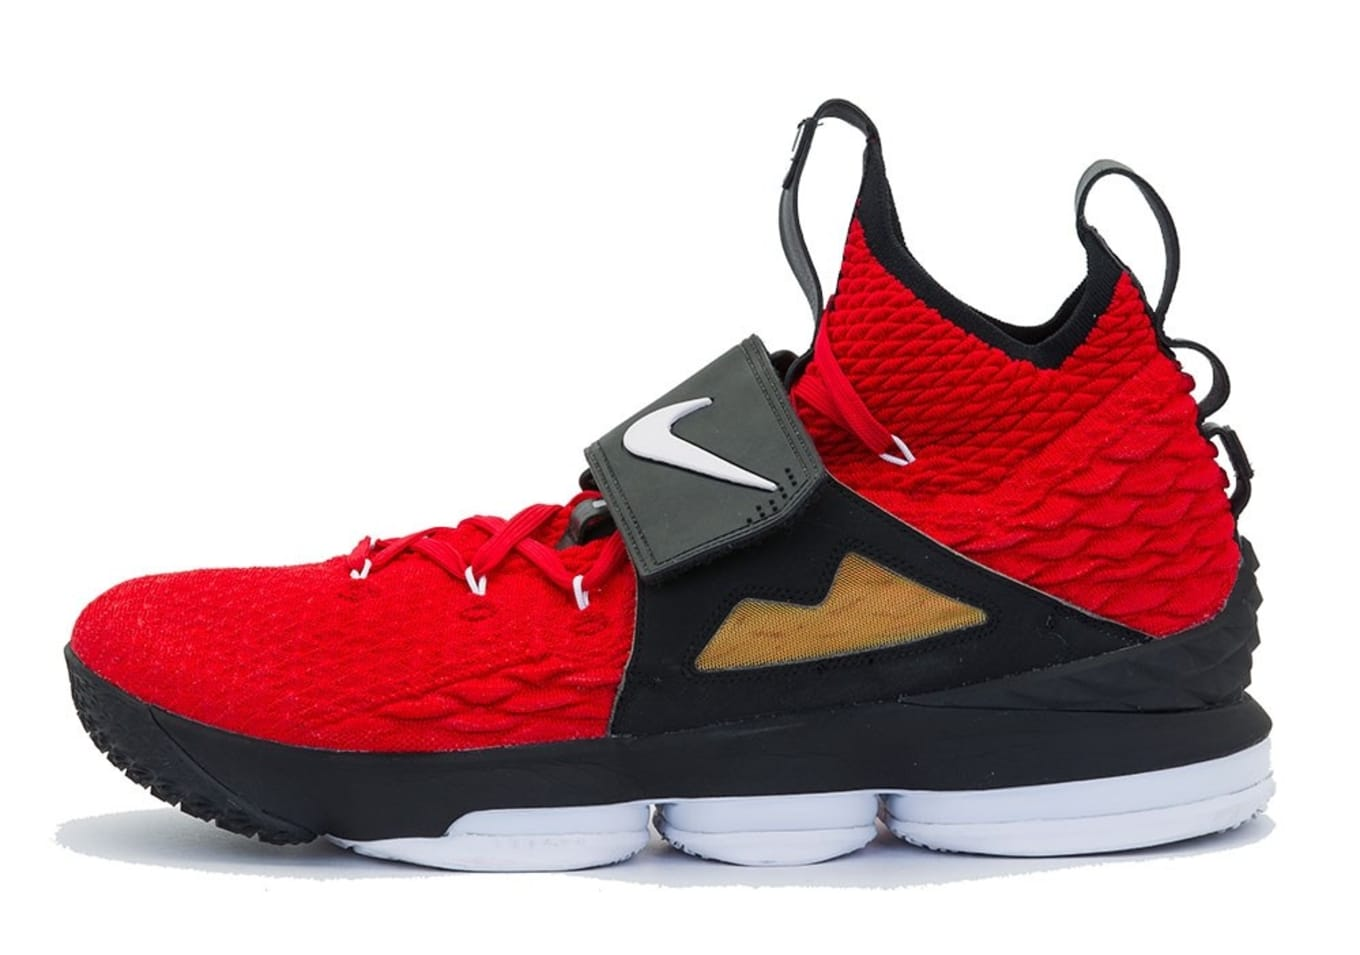 81dac9ffa1f LeBron James  I Promise School Game-Worn Nikes Available Now